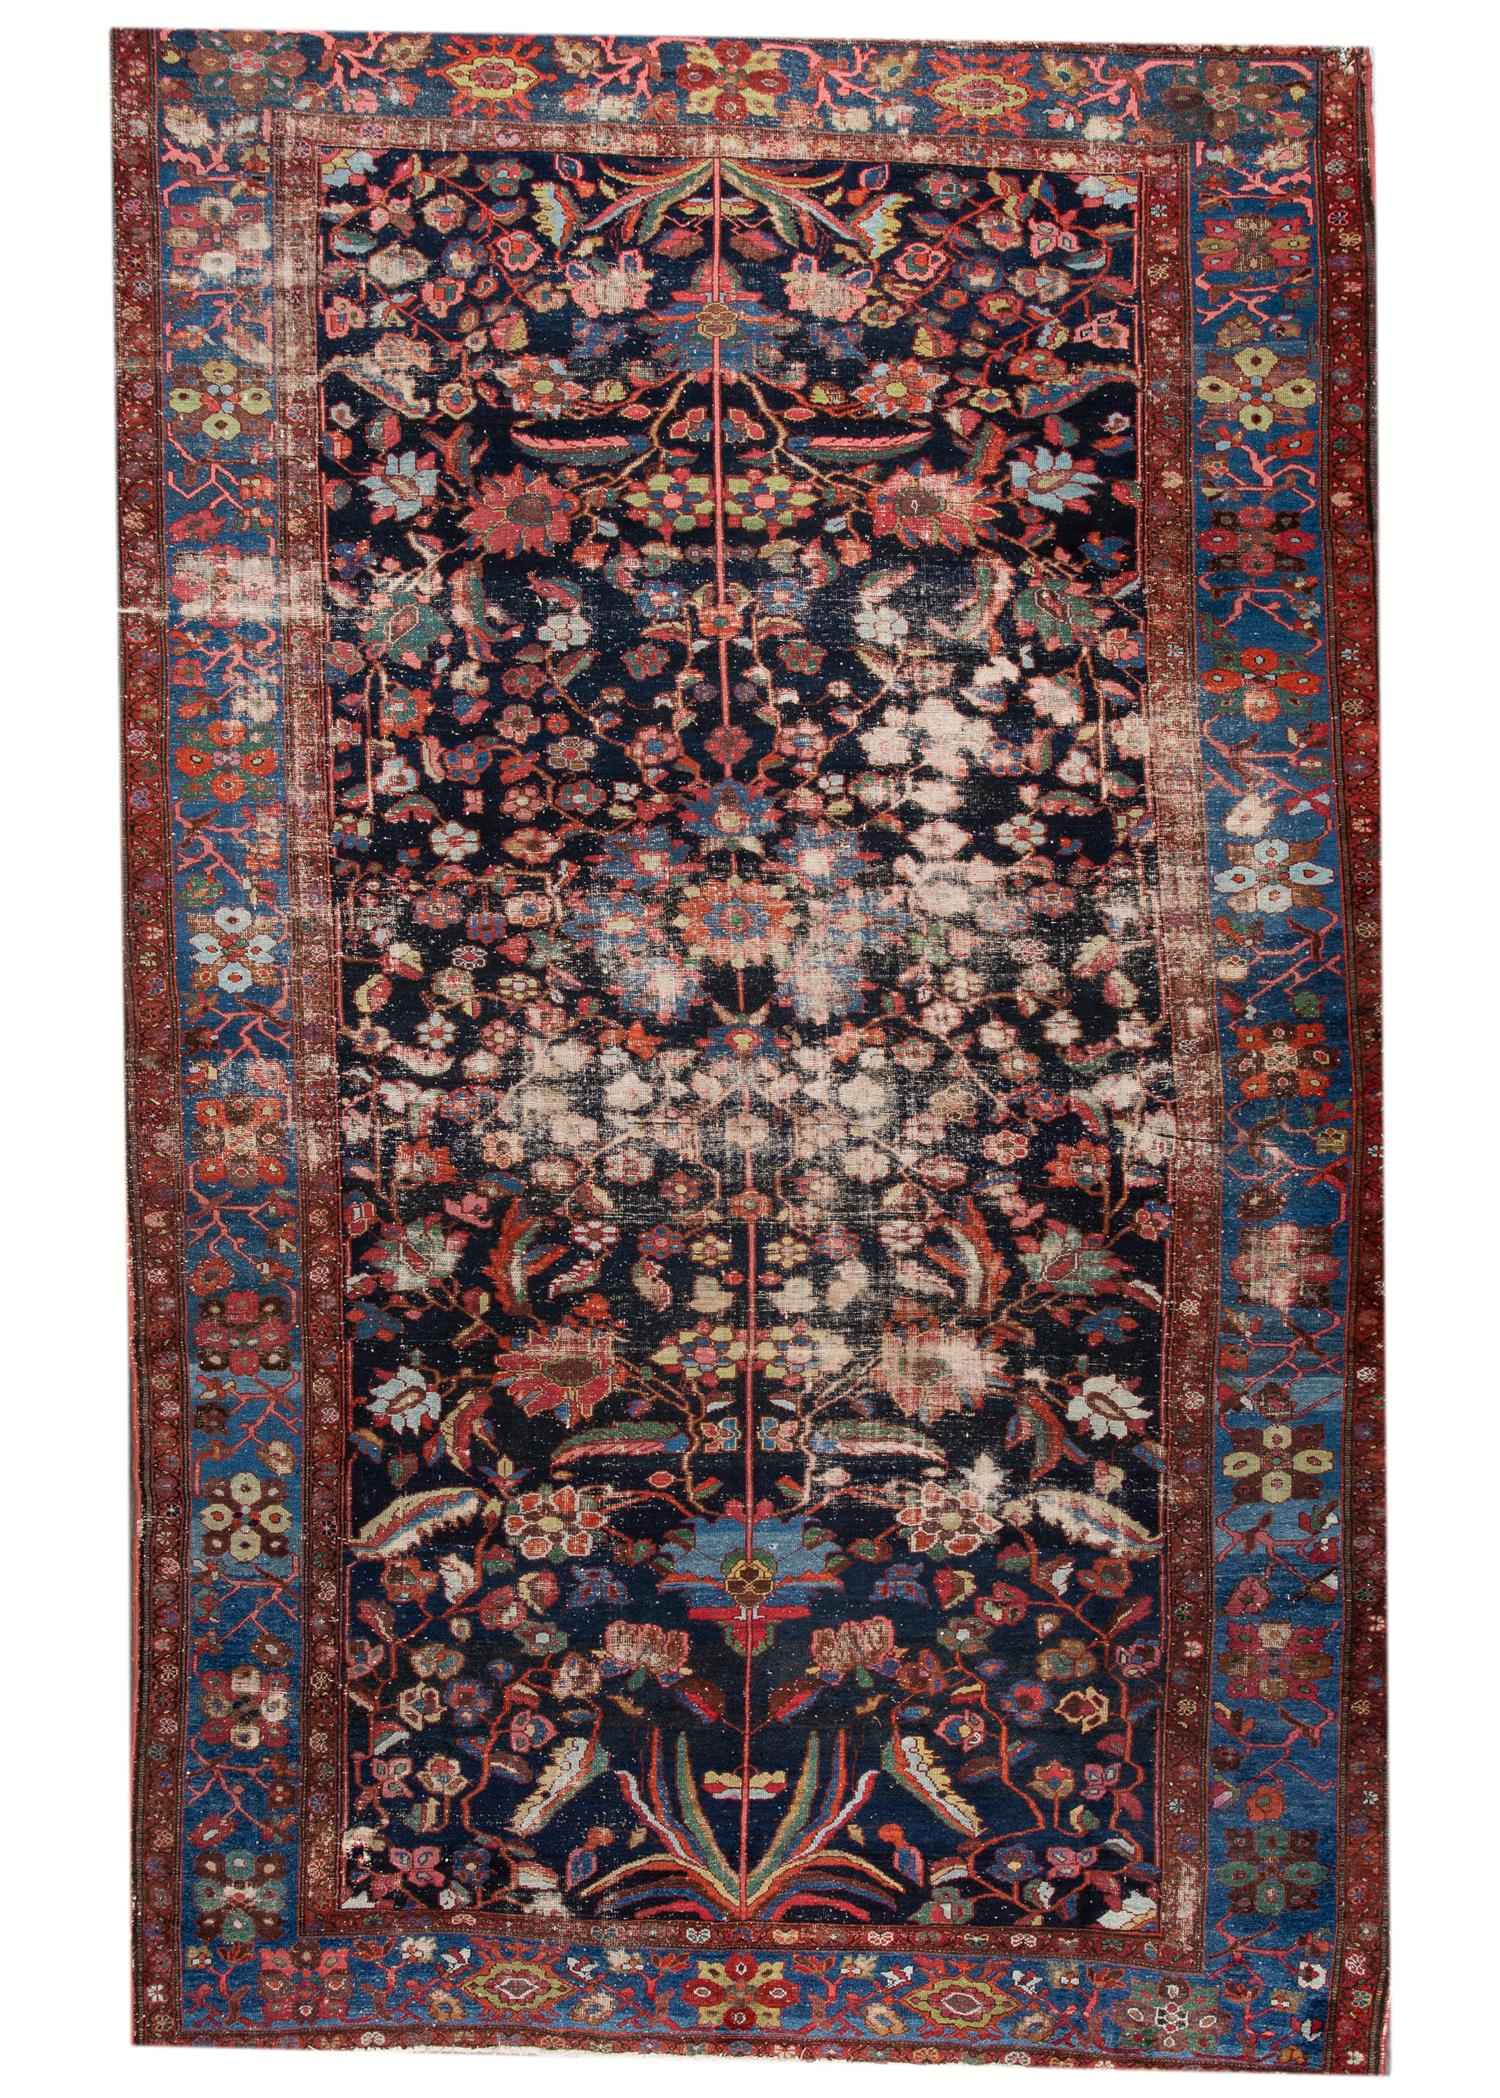 Antique Persian Malayer Rug, 11X16